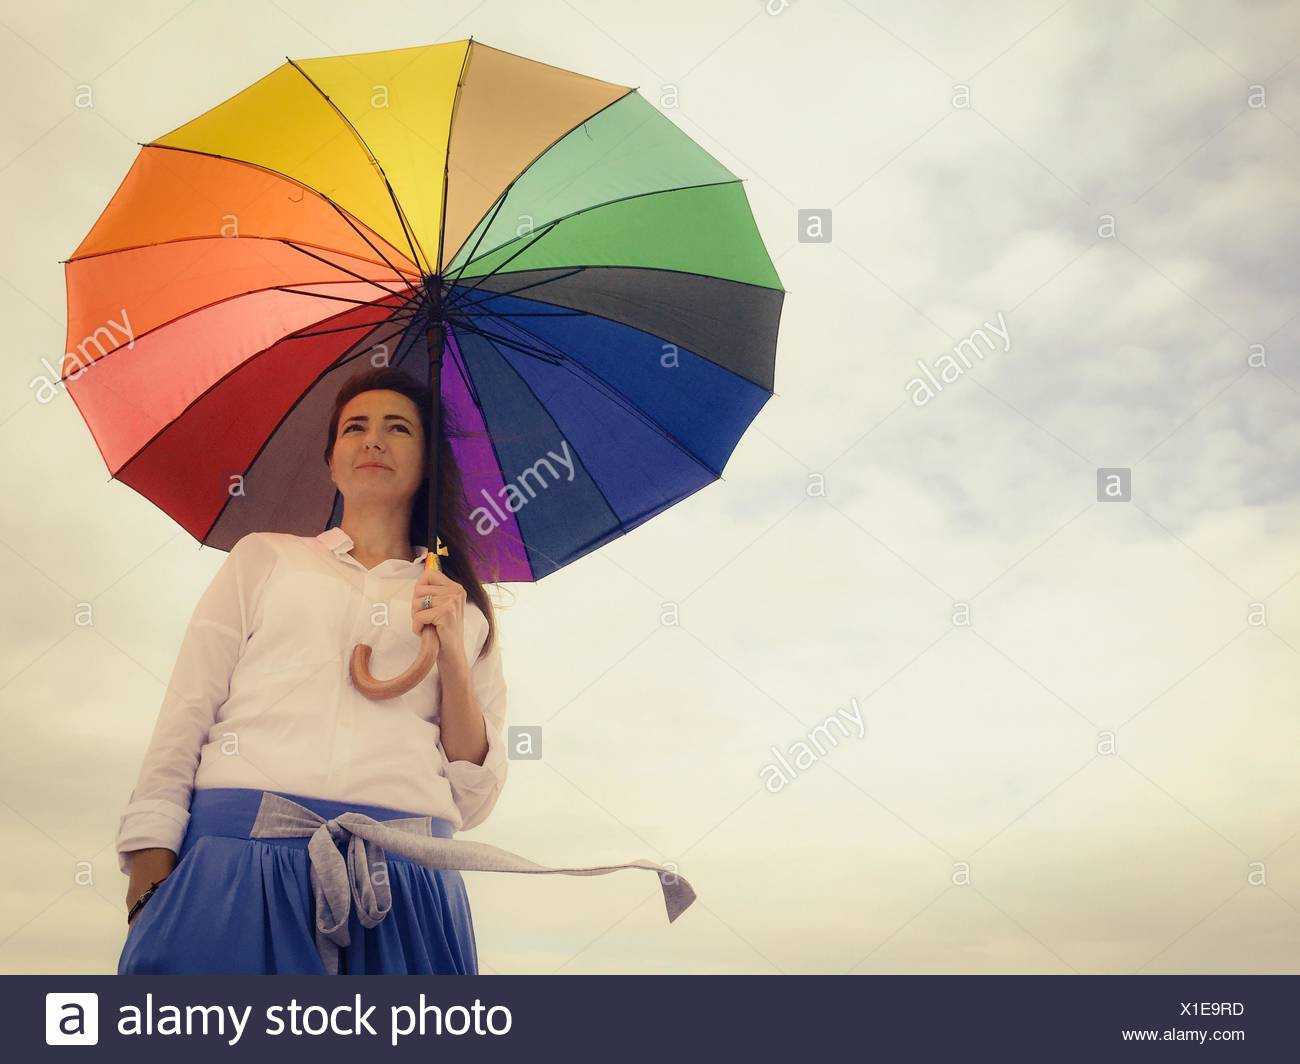 Low Angle View Of Beautiful Woman Standing With Multi Colored Umbrella Against Cloudy Sky - Stock Image